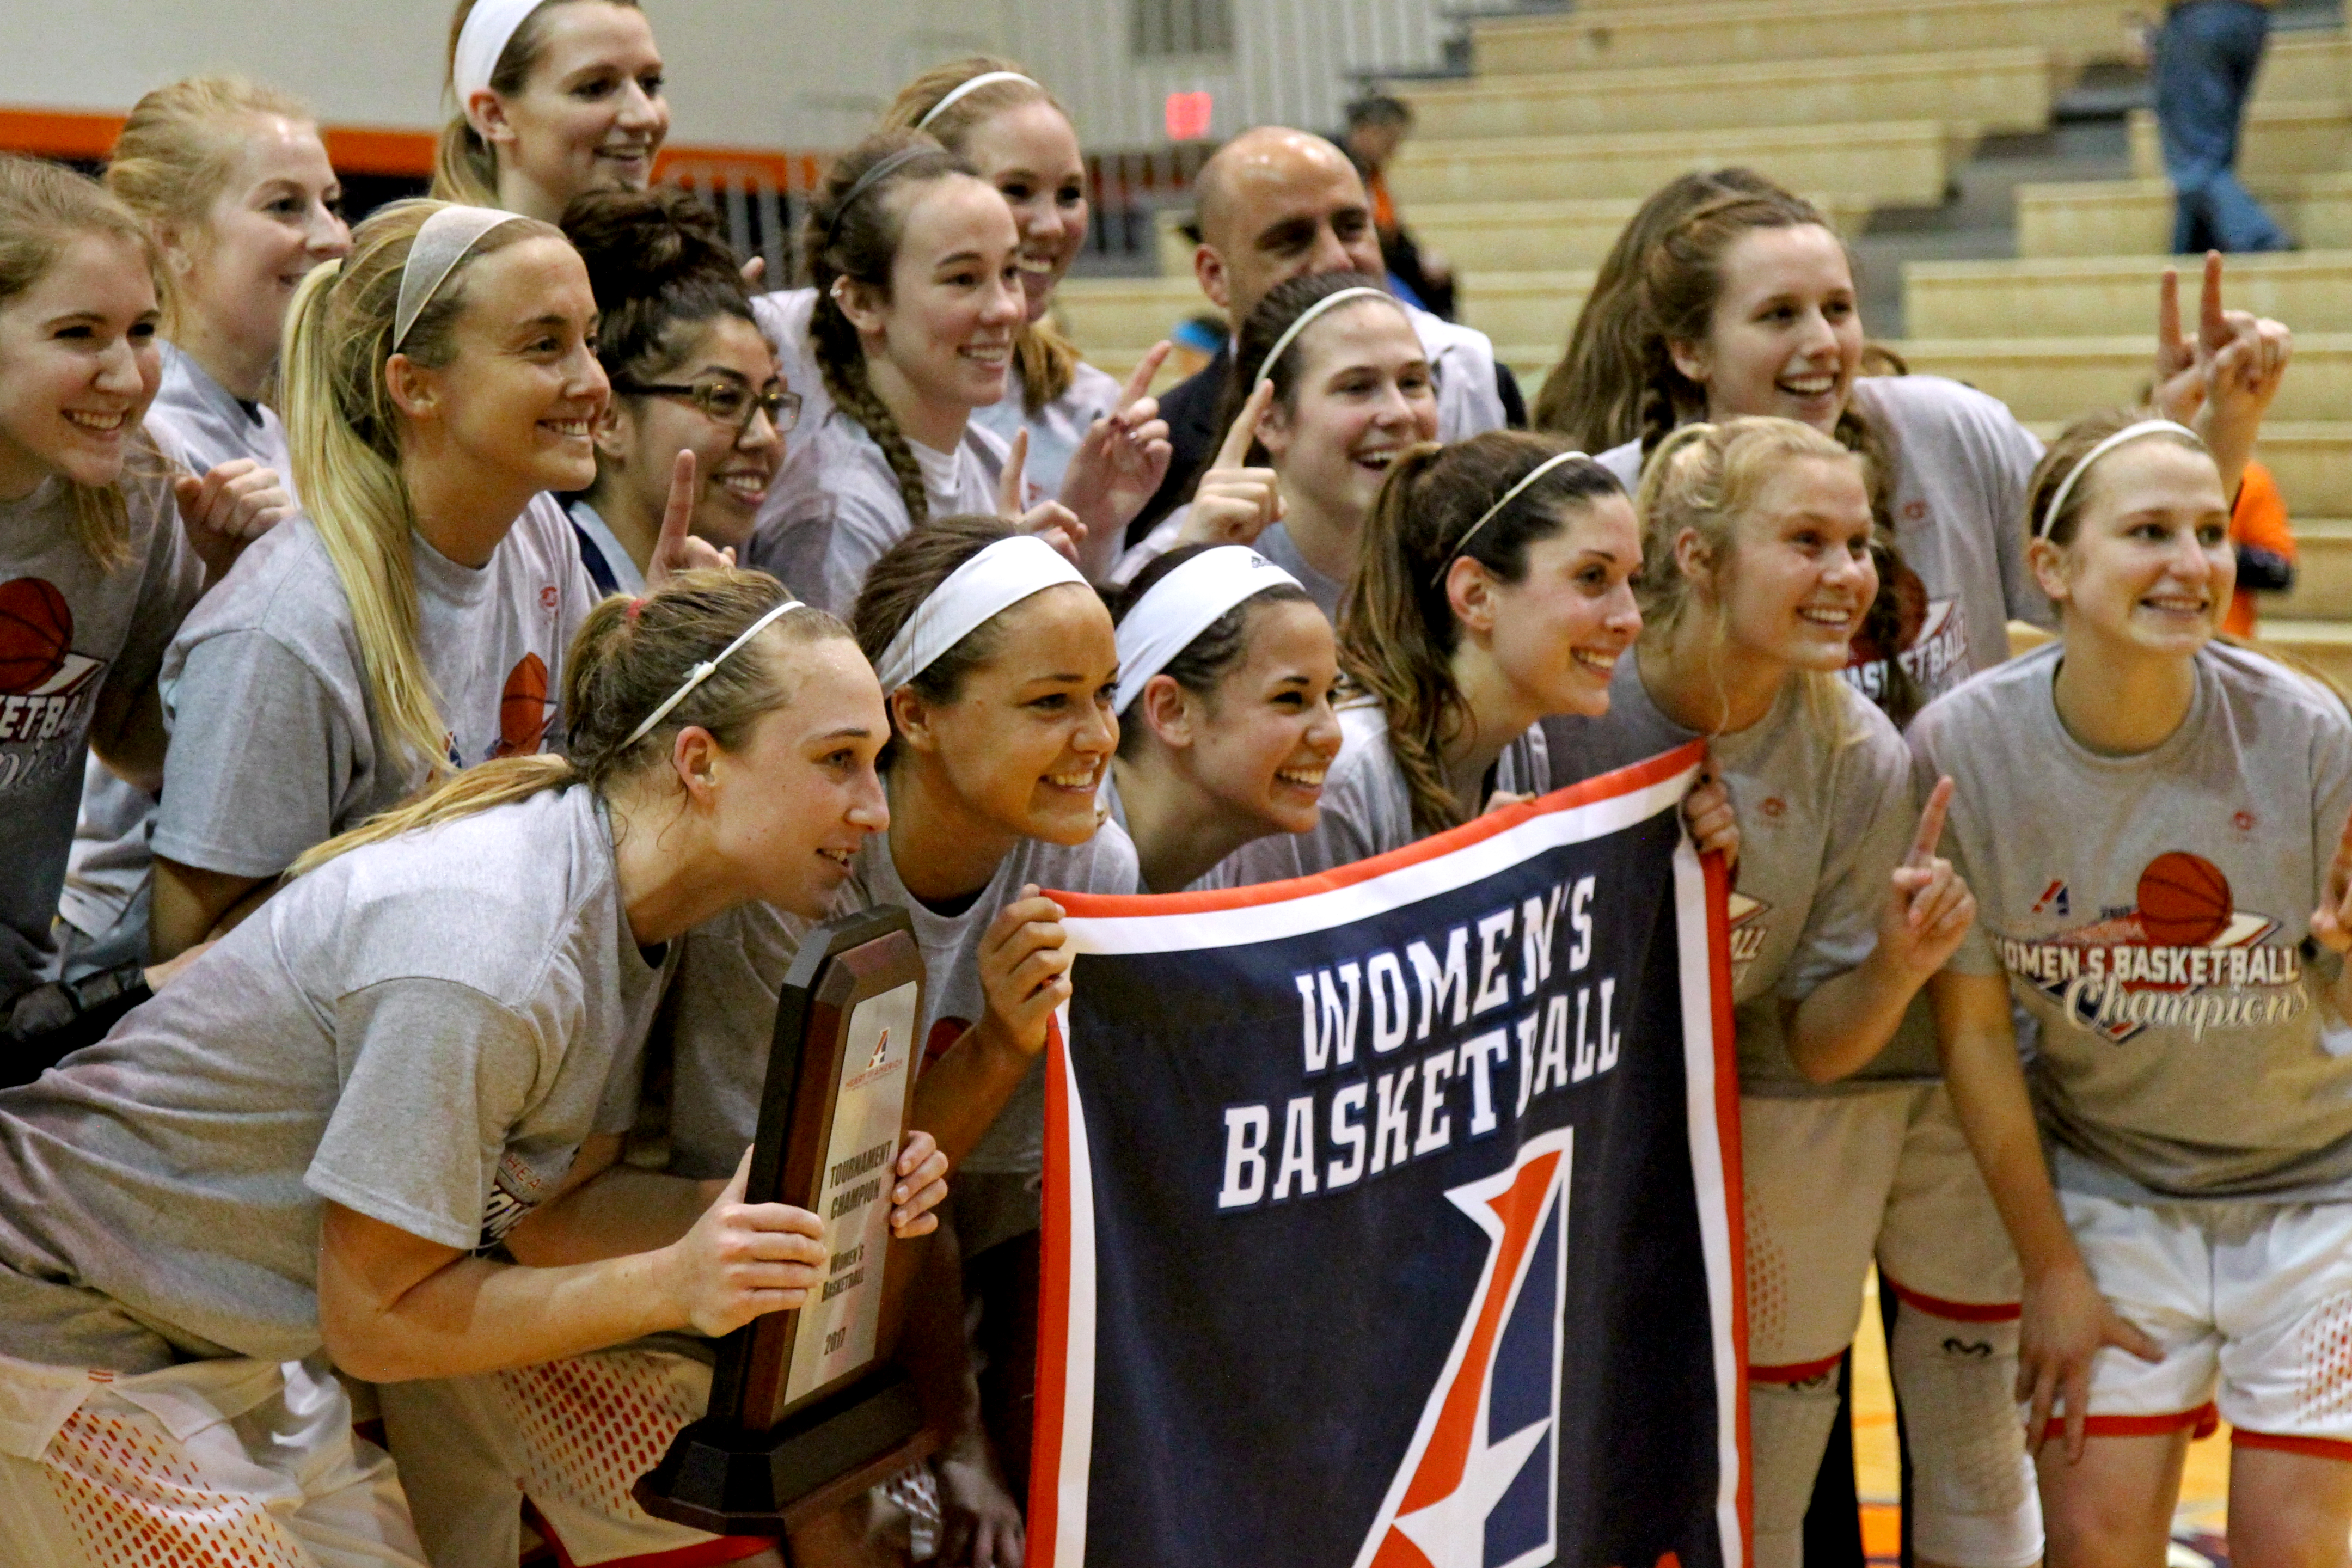 The Baker women's basketball players pose for a photo with their Heart championship banner after defeating Benedictine 64-51. The team won its first-ever Heart Conference Tournament title along with the regular-season championship. Photo by Chad Phillips.